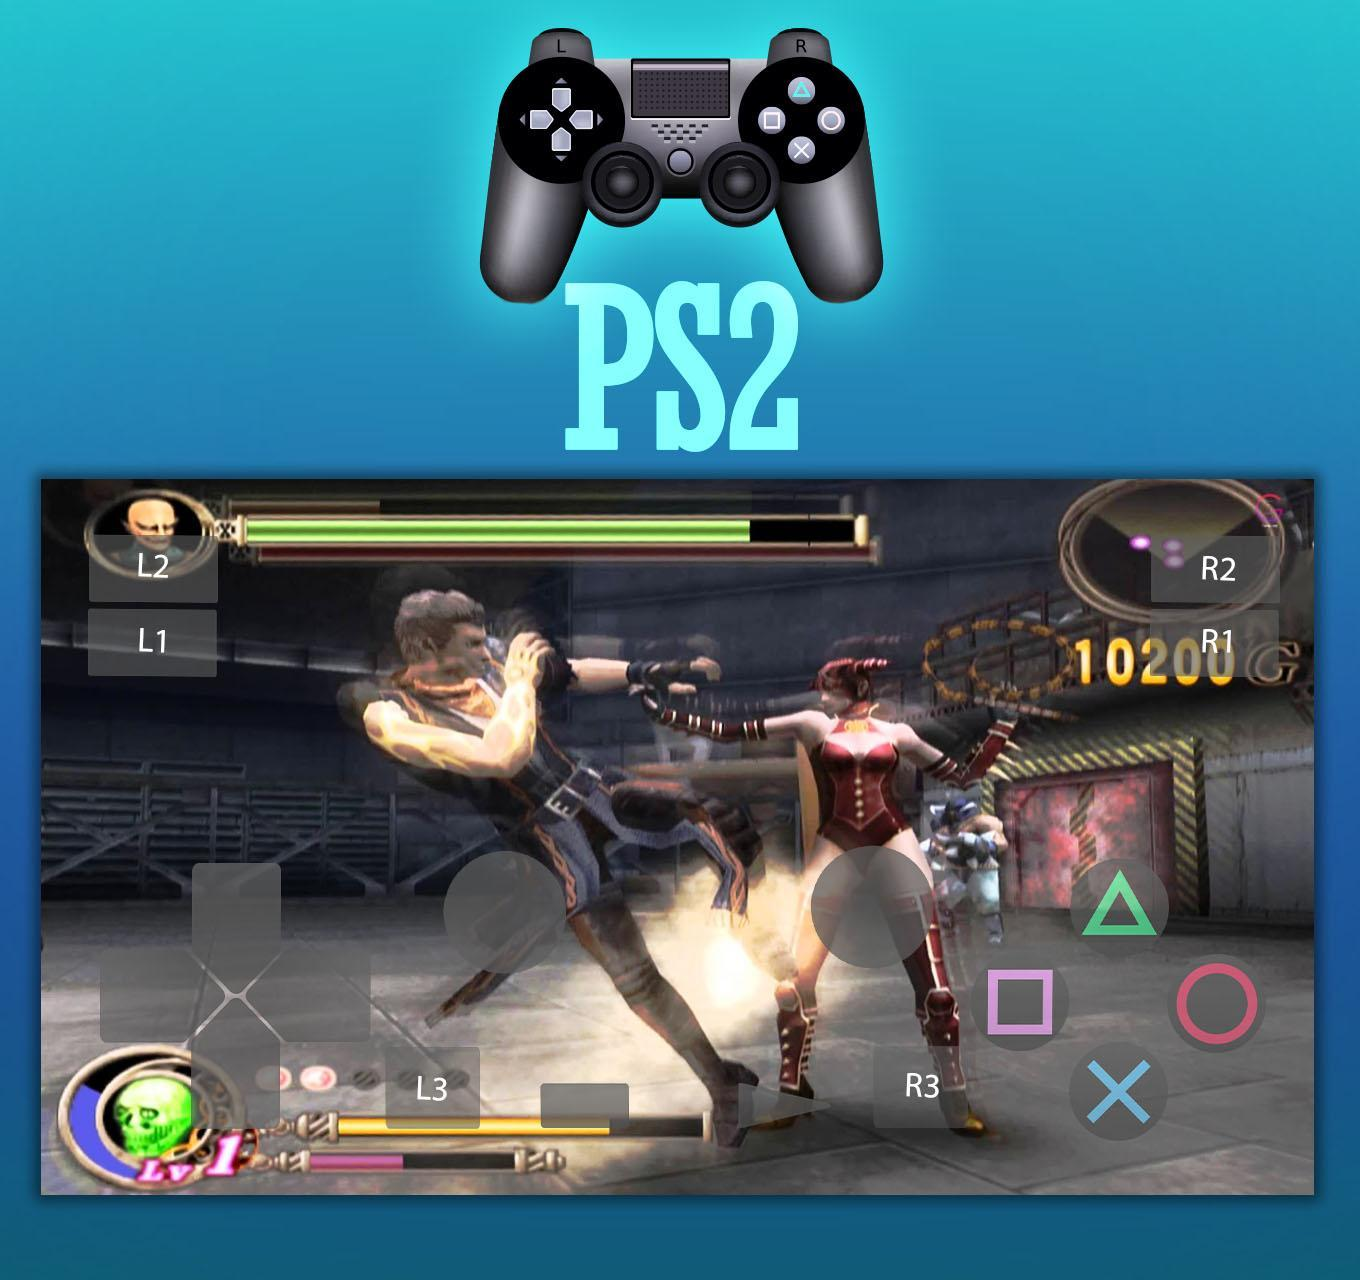 can we play ps2 games on ppsspp